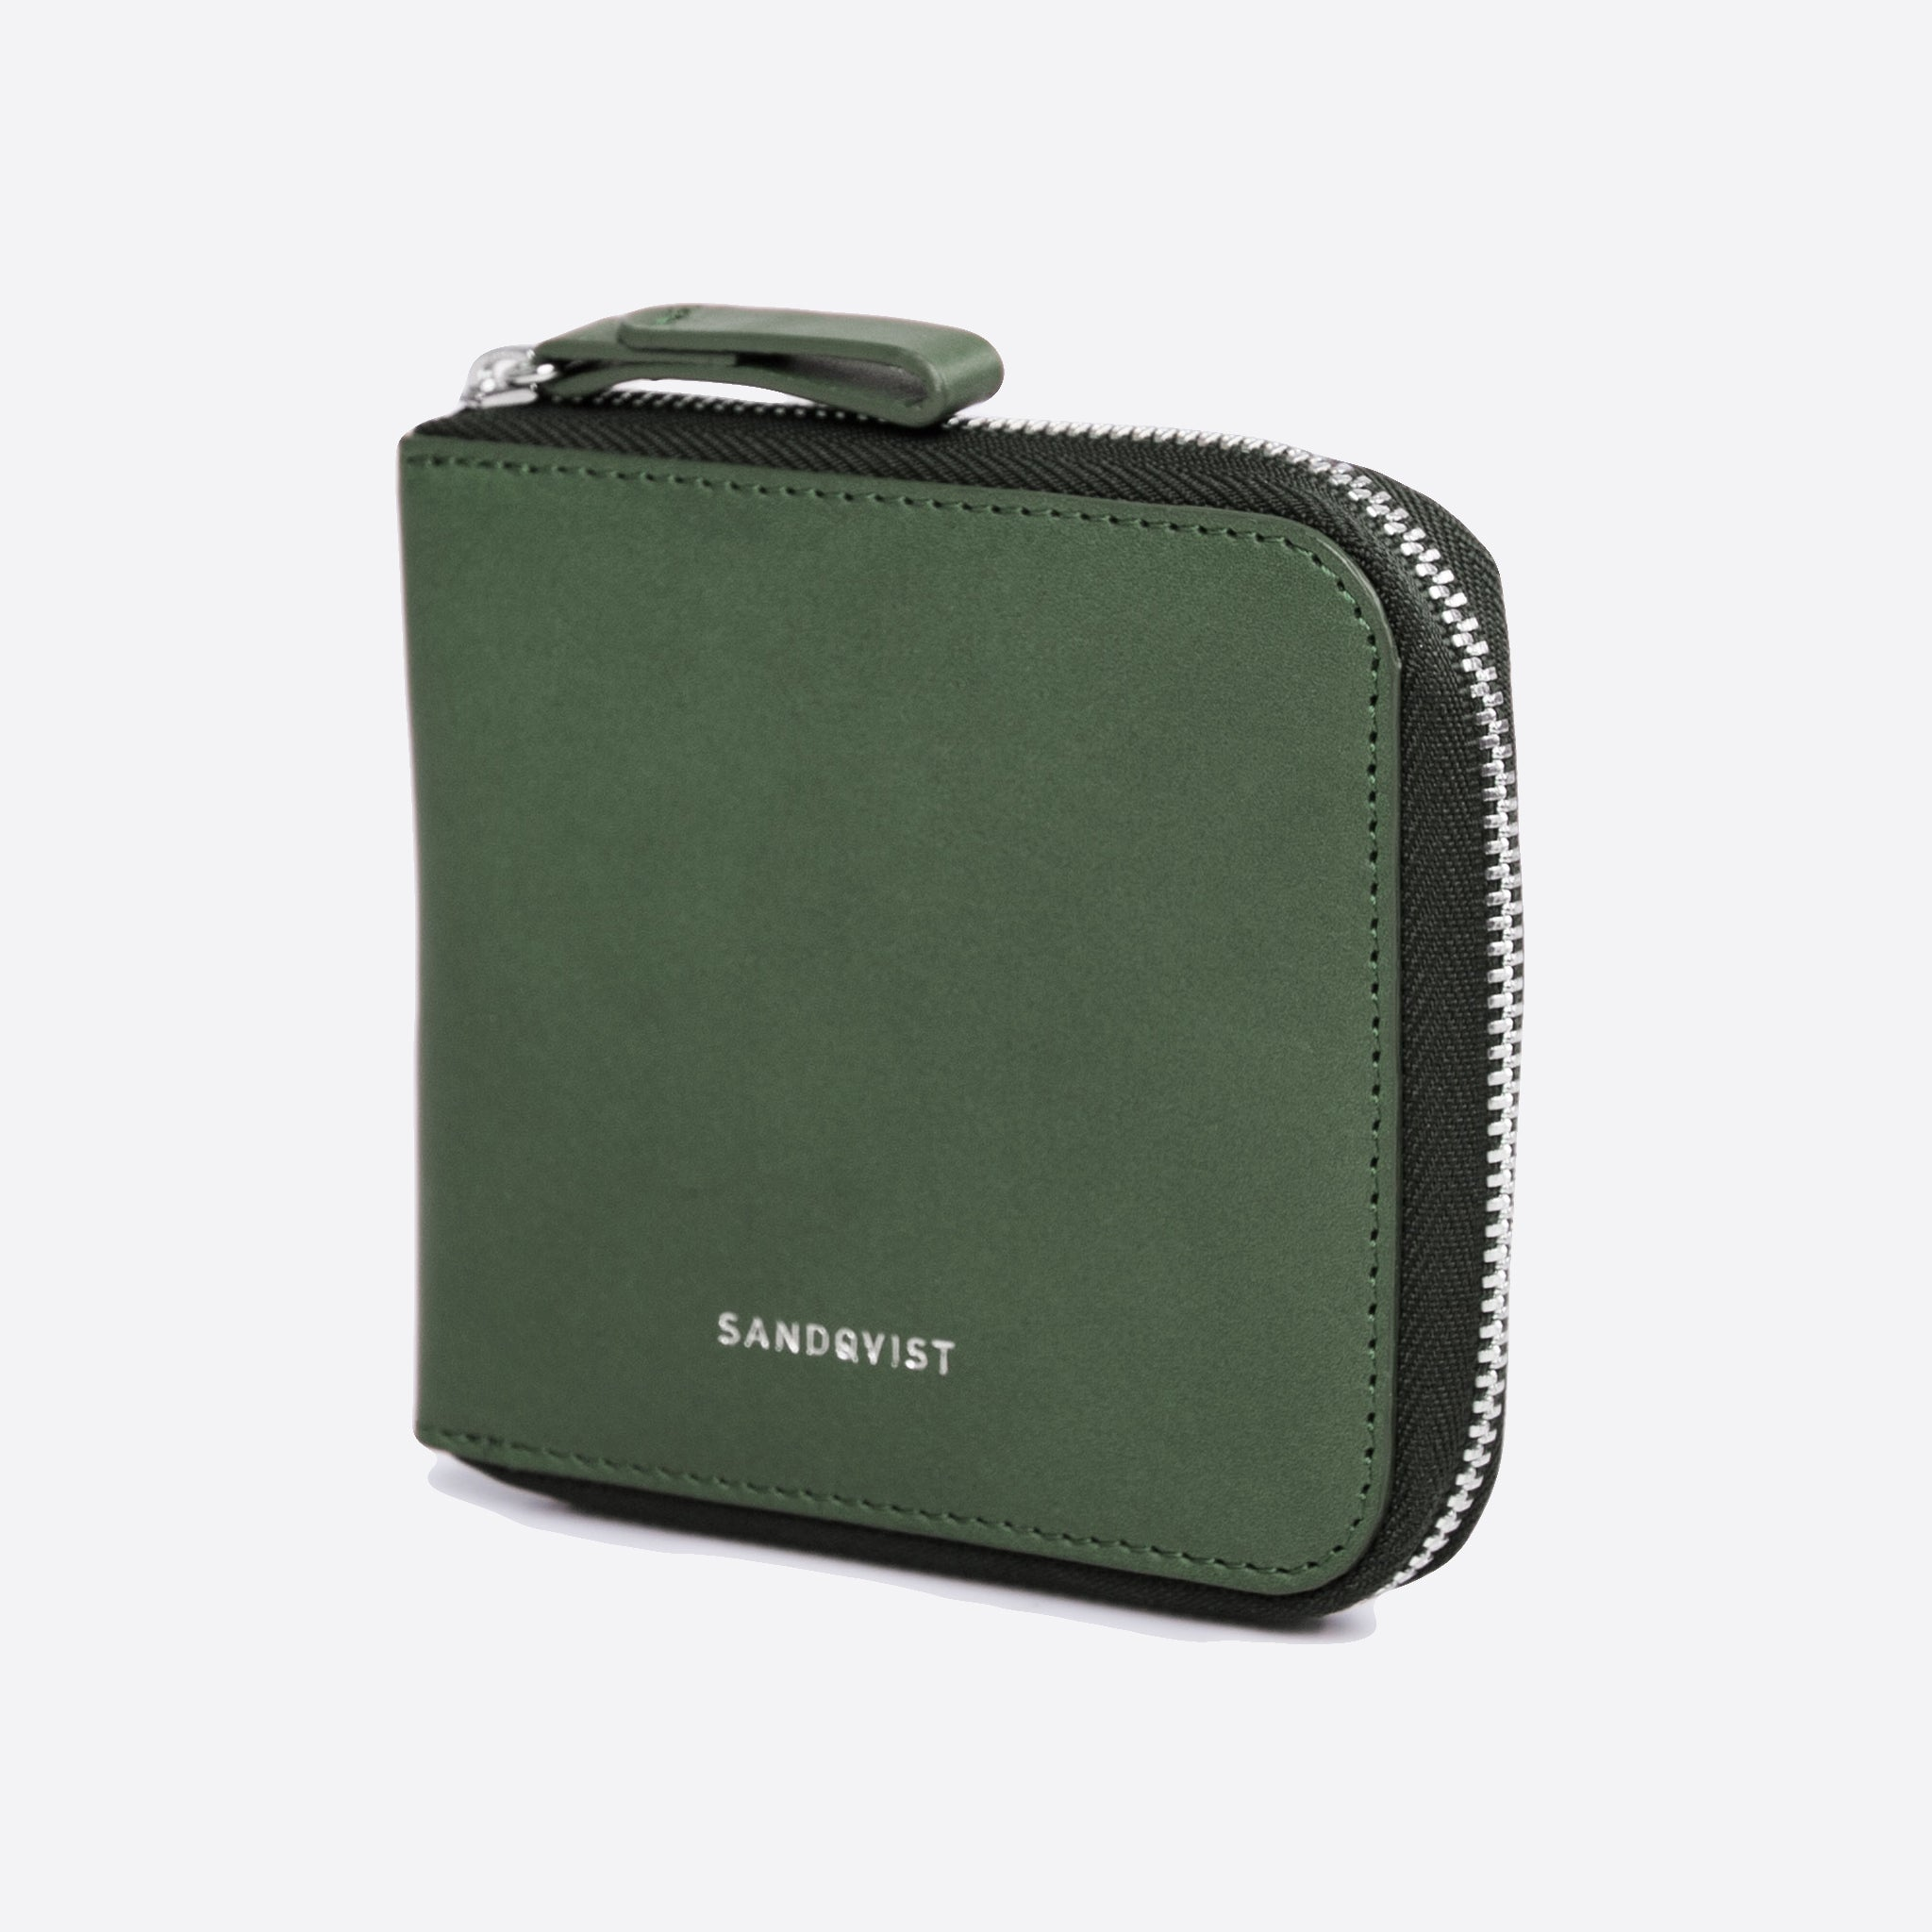 Sandqvist Tyko Wallet in Green